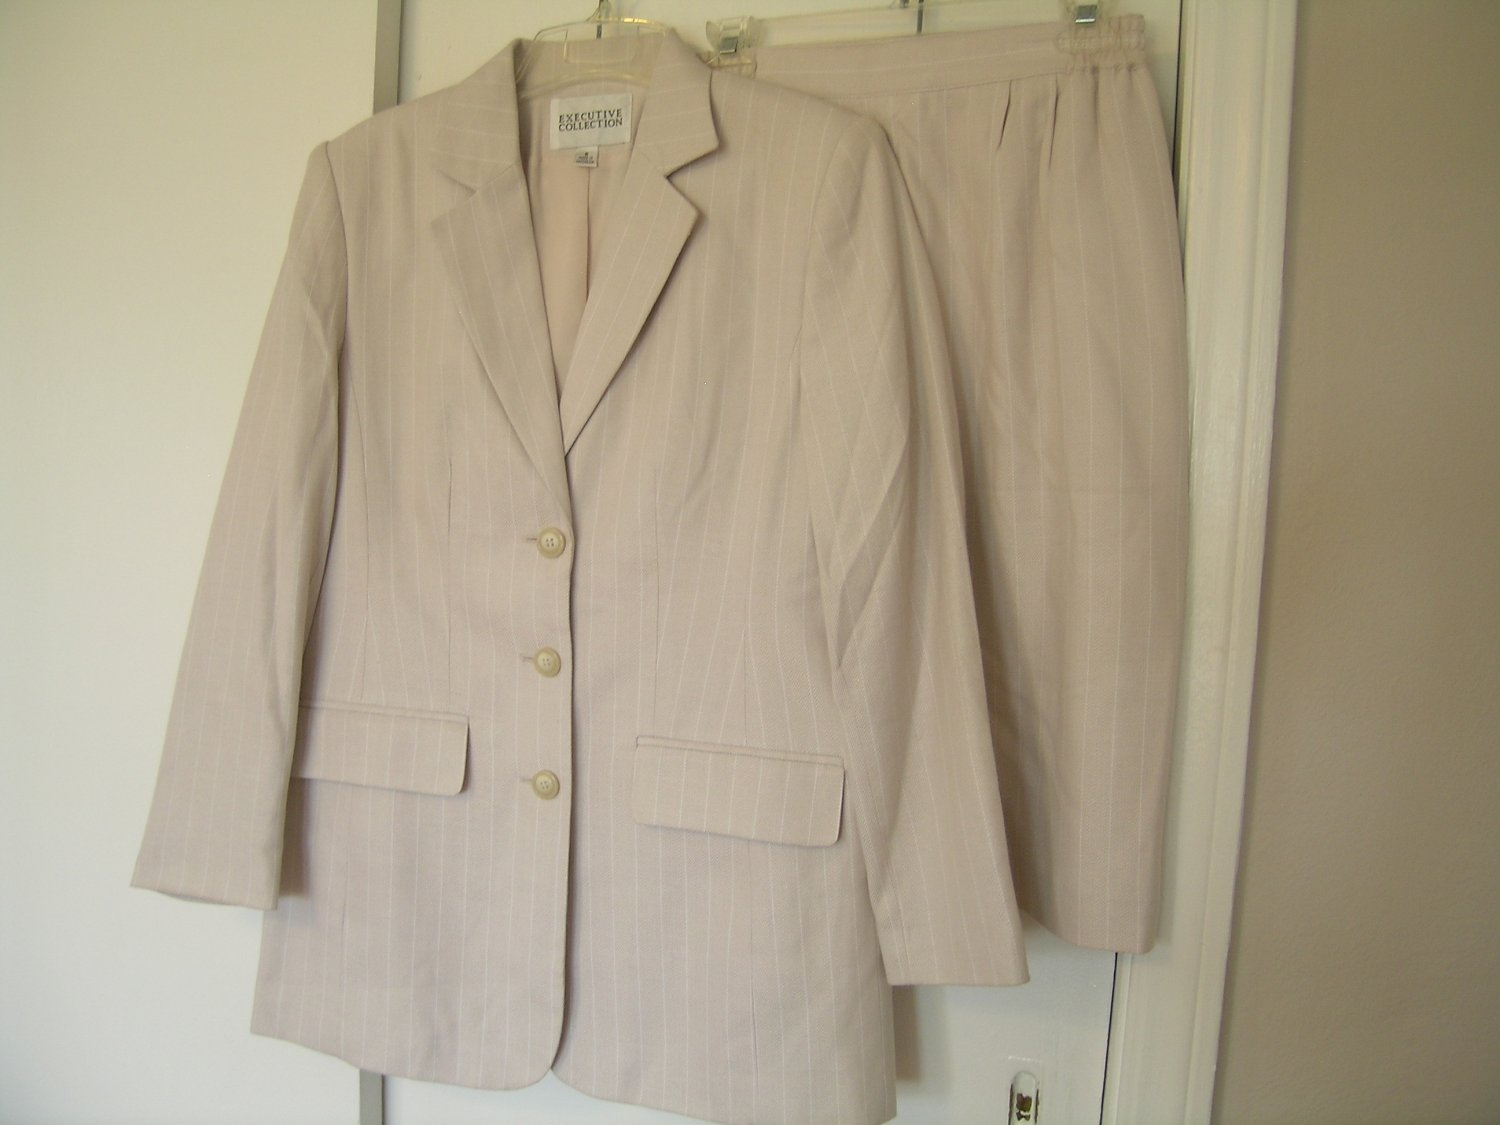 Executive Collection Ladies Skirt Suit Size 8